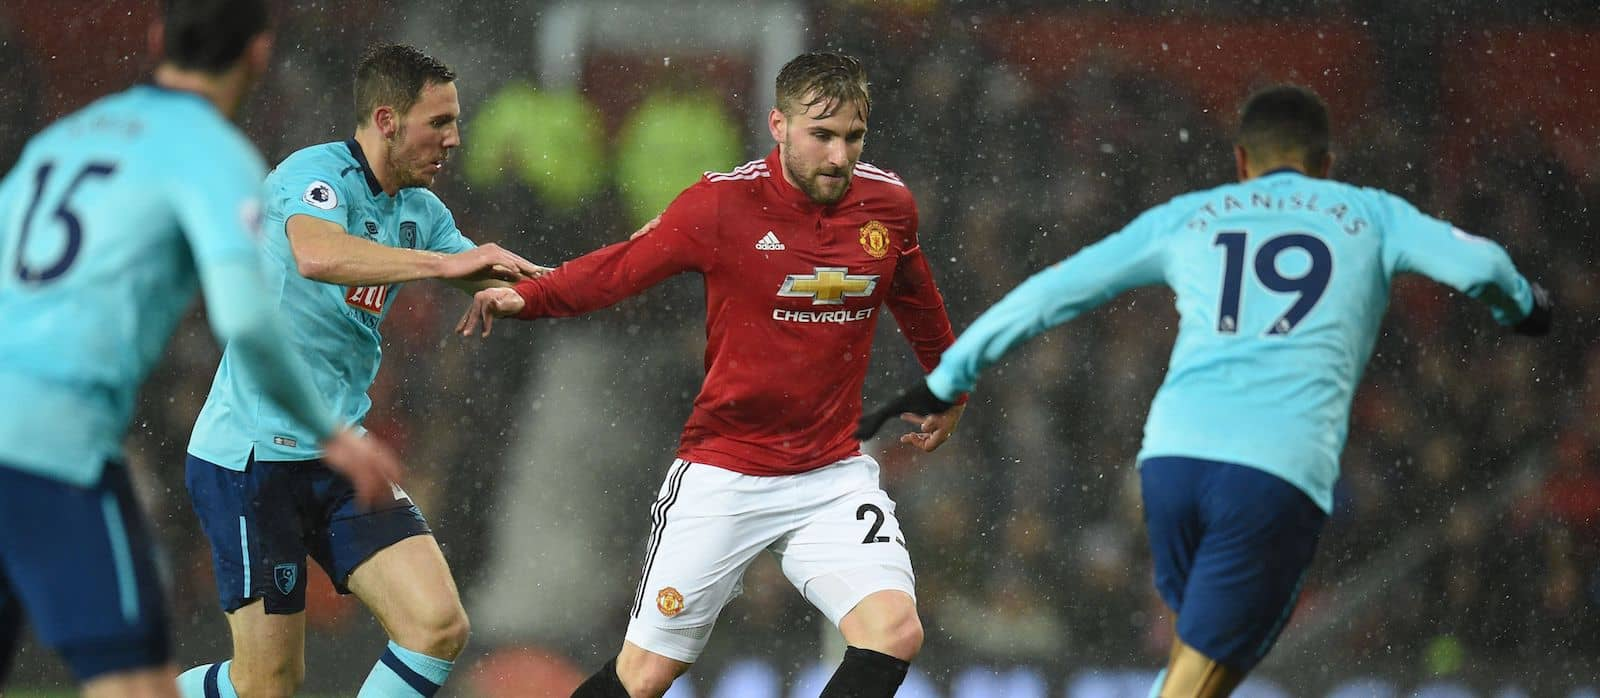 Everton closely monitoring Luke Shaw's situation at Manchester United – report